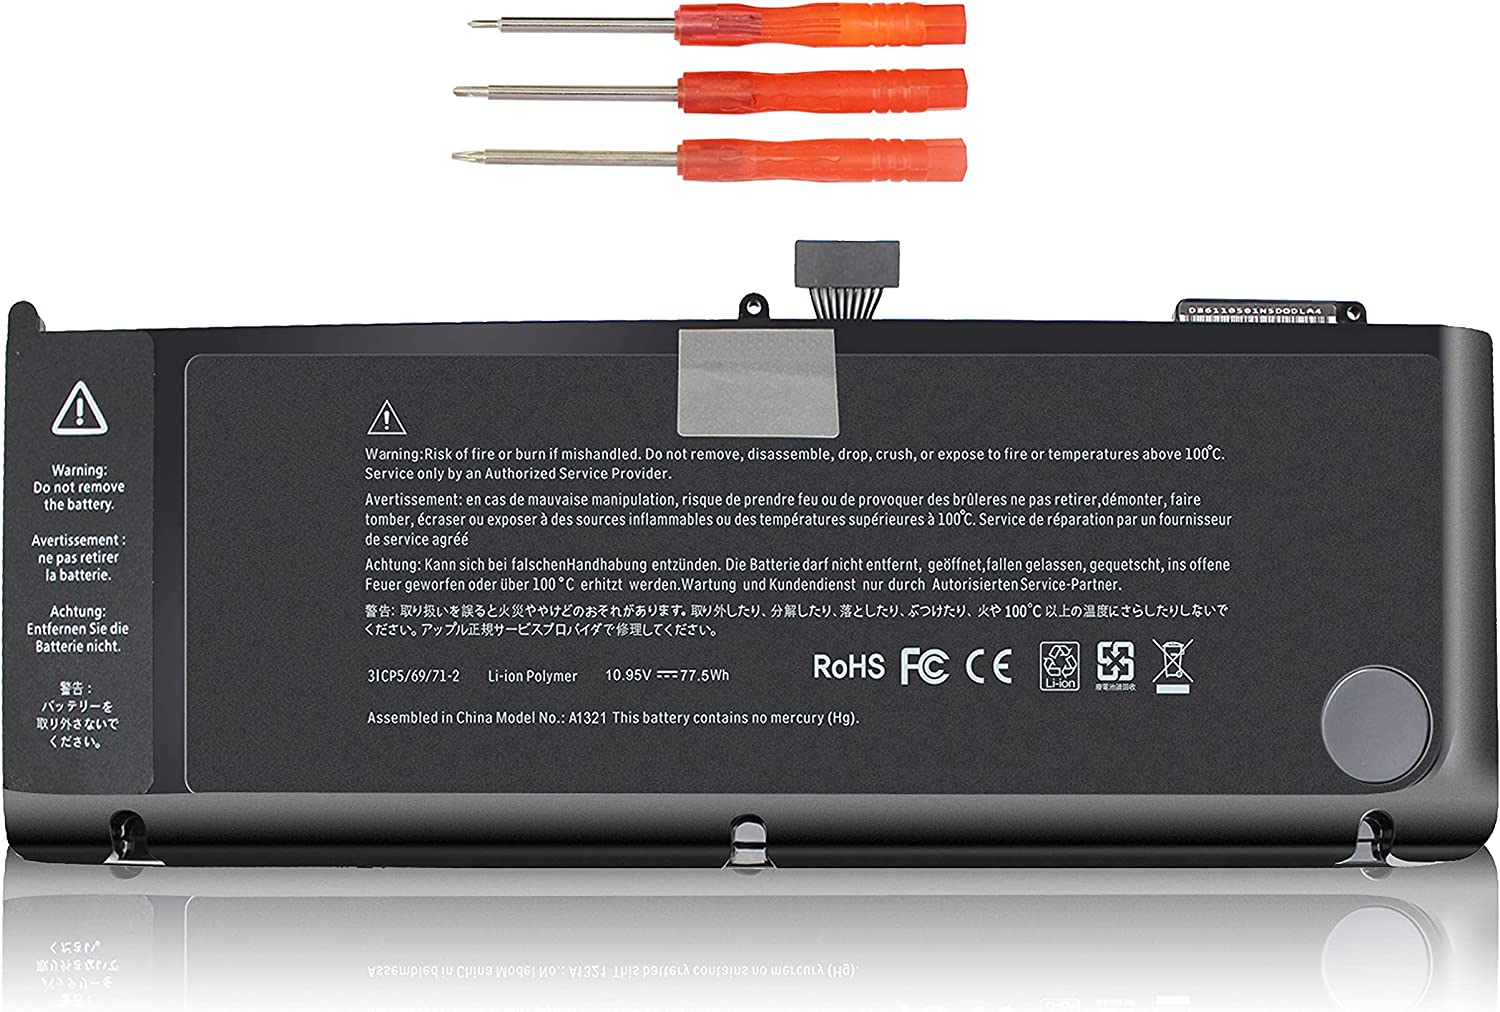 Shareway A1321 Laptop Battery for MacBook Pro 15 inch A1286 (Mid 2009 Early/Late 2010 Version) MC118 MC371 MC372 MC373 MB985 MB986 020-6766-B 020-6380-A 661-5211 661-5476 3ICP5/81/77-2 10.95V/77.5WH